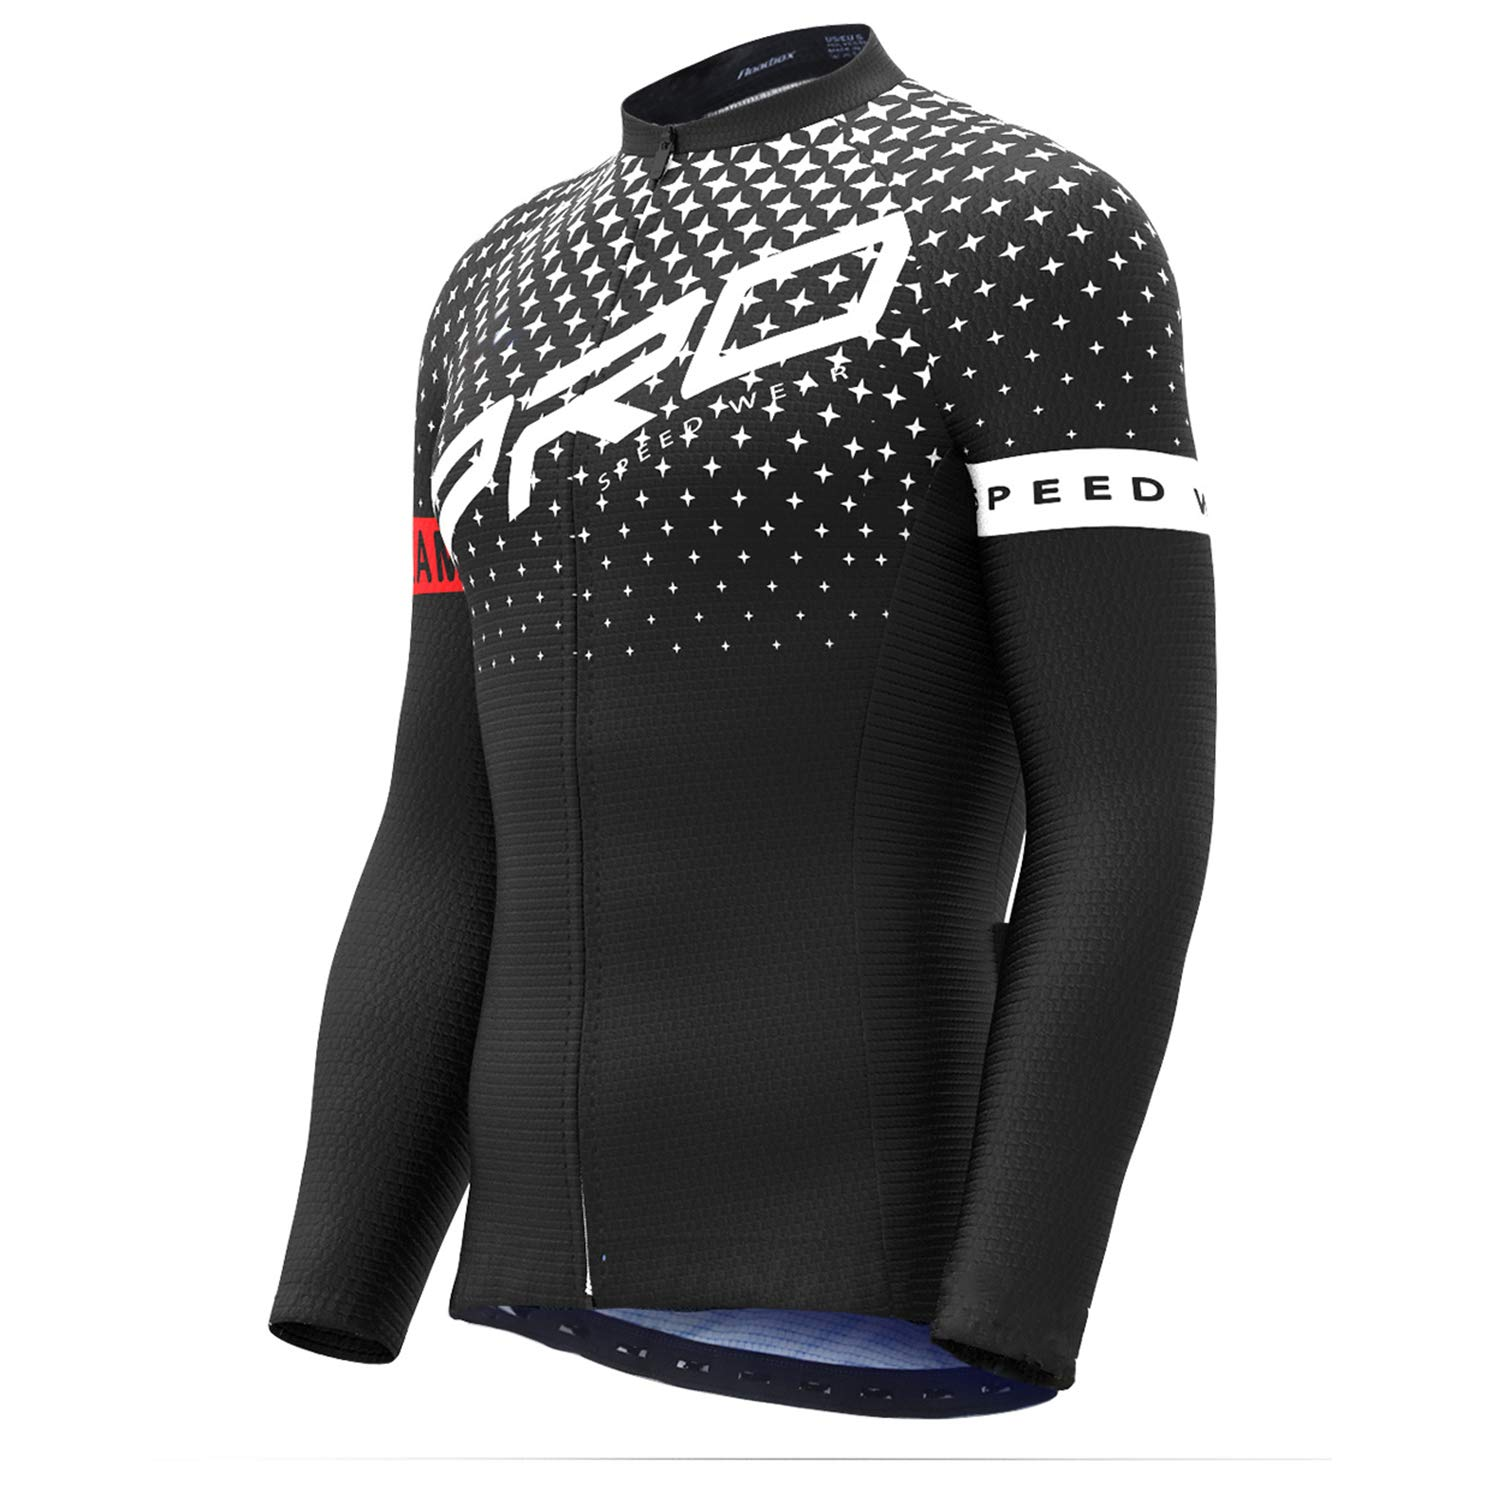 Roadbox Cycling Jersey - Men s Full Zip Moisture Wicking Running Long Sleeve  Tops Mountain Bike Biking 073833cd9